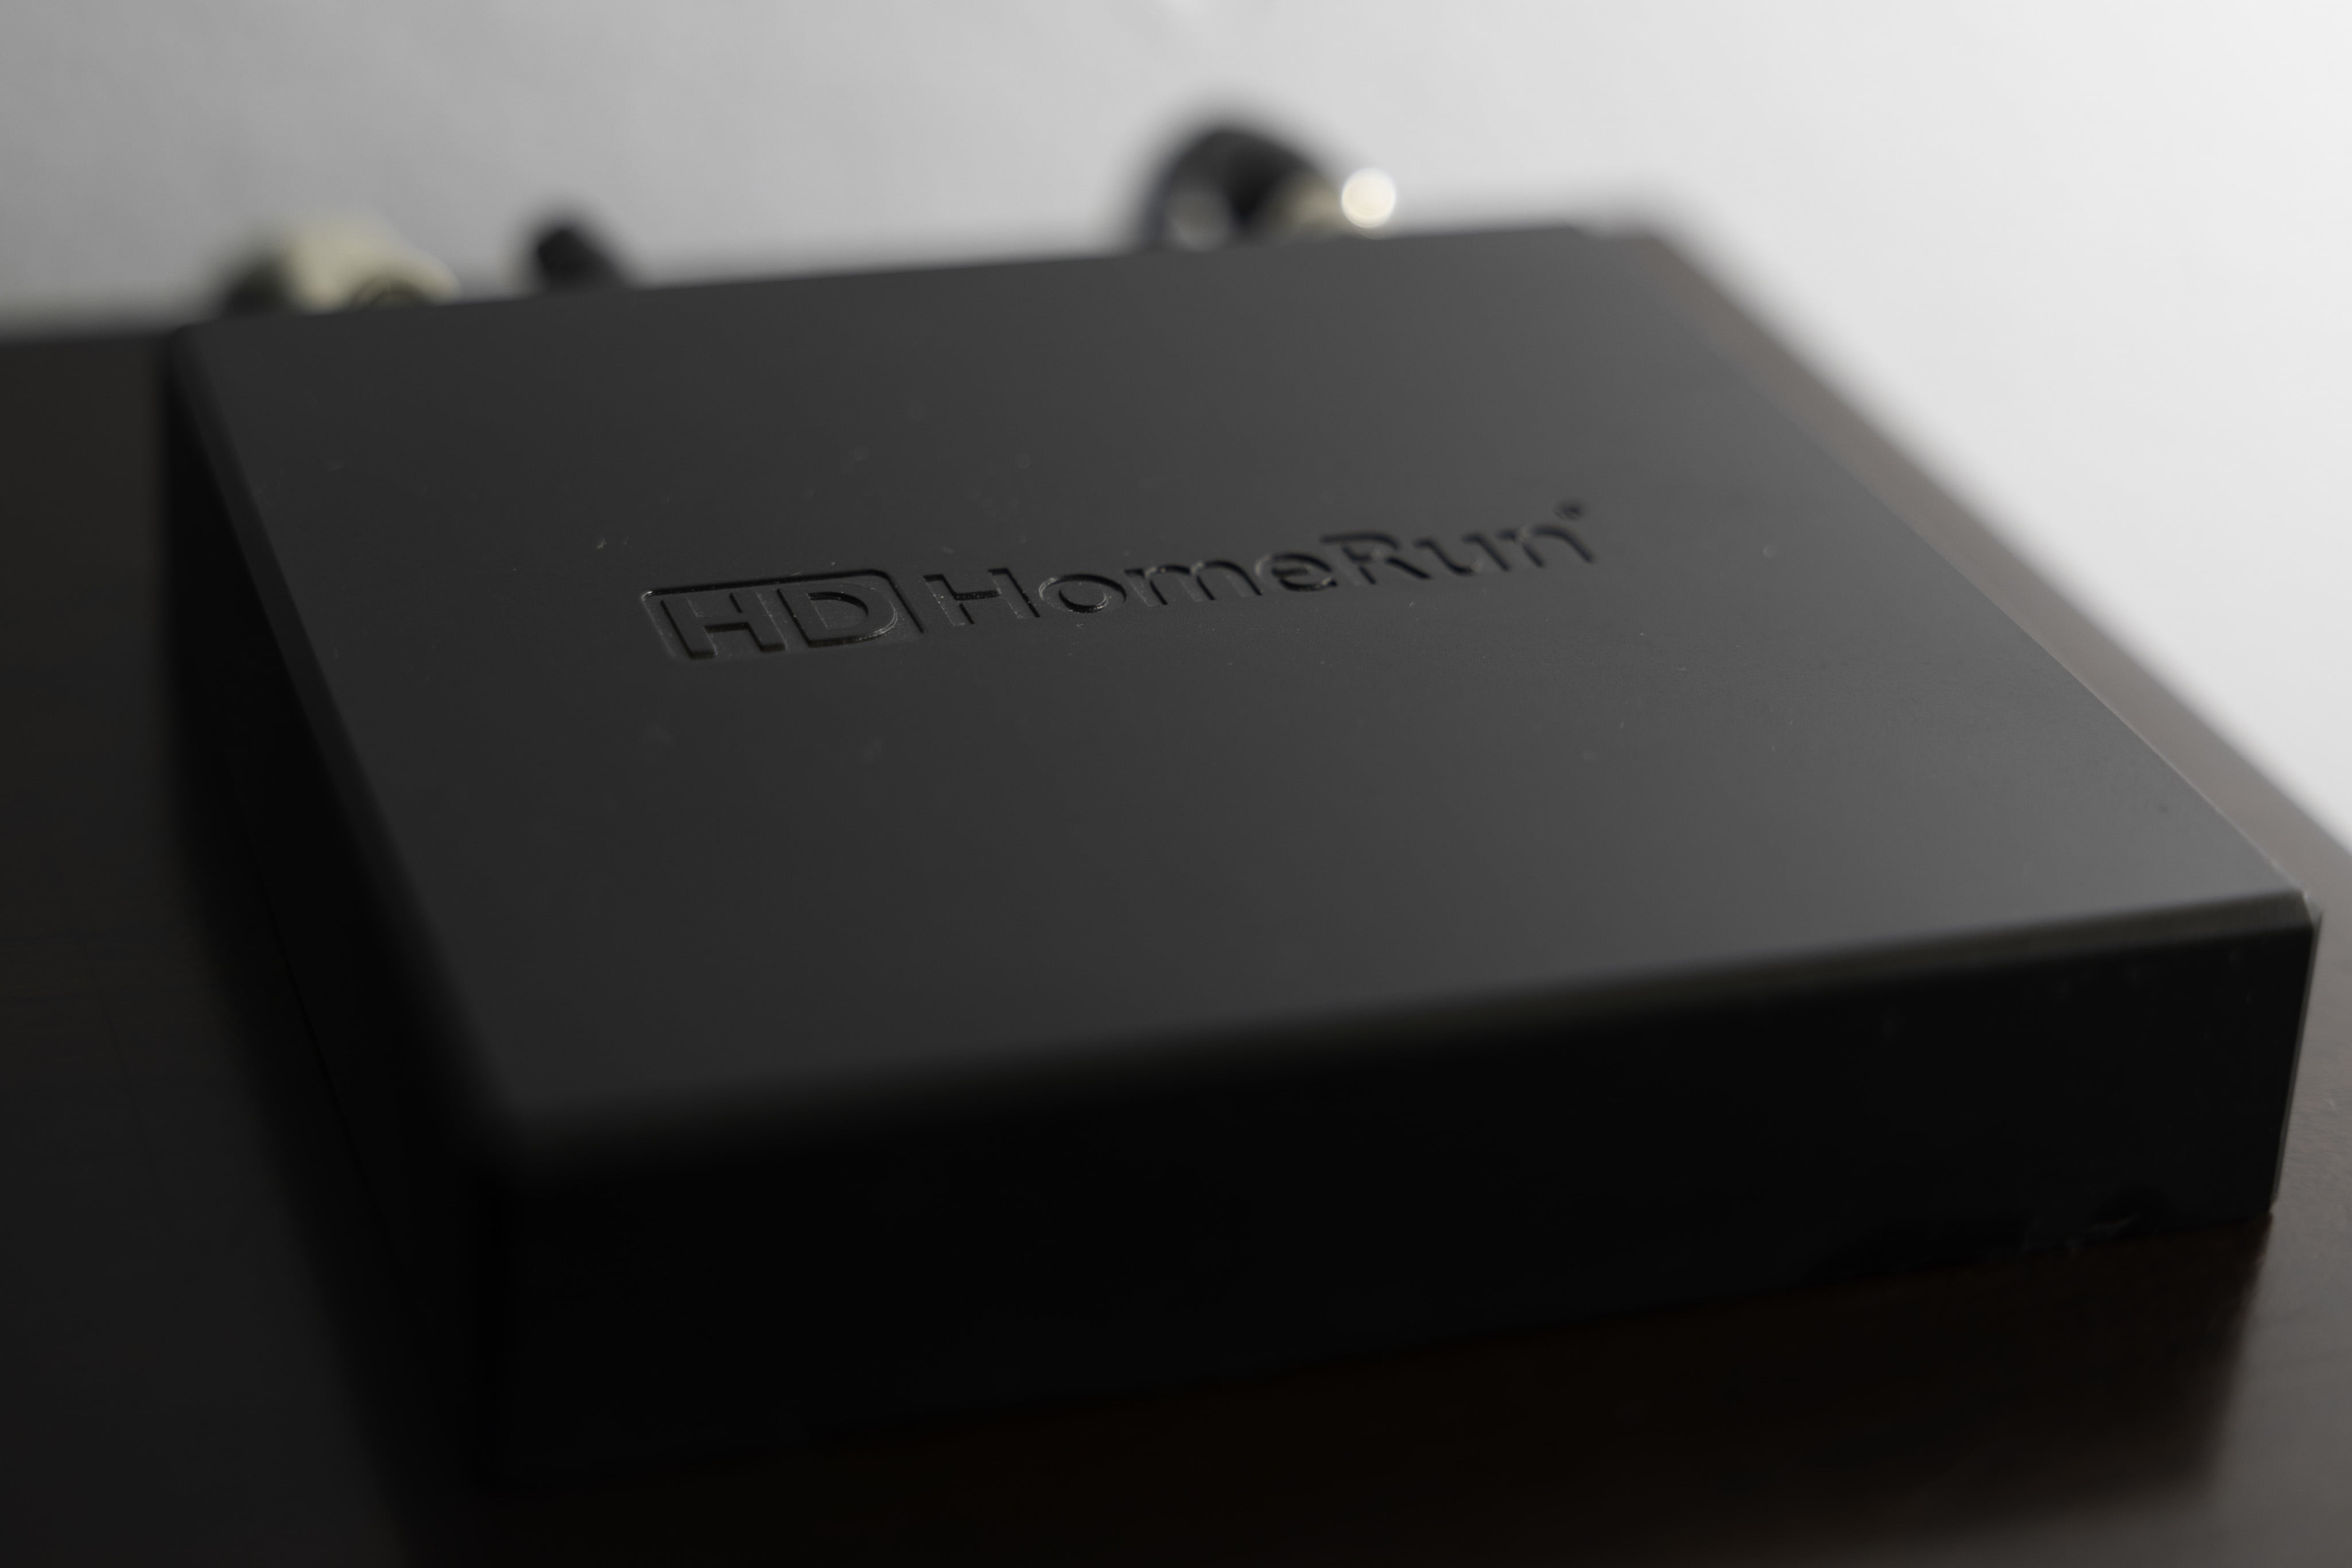 HDHomeRun over-the-air streaming box.